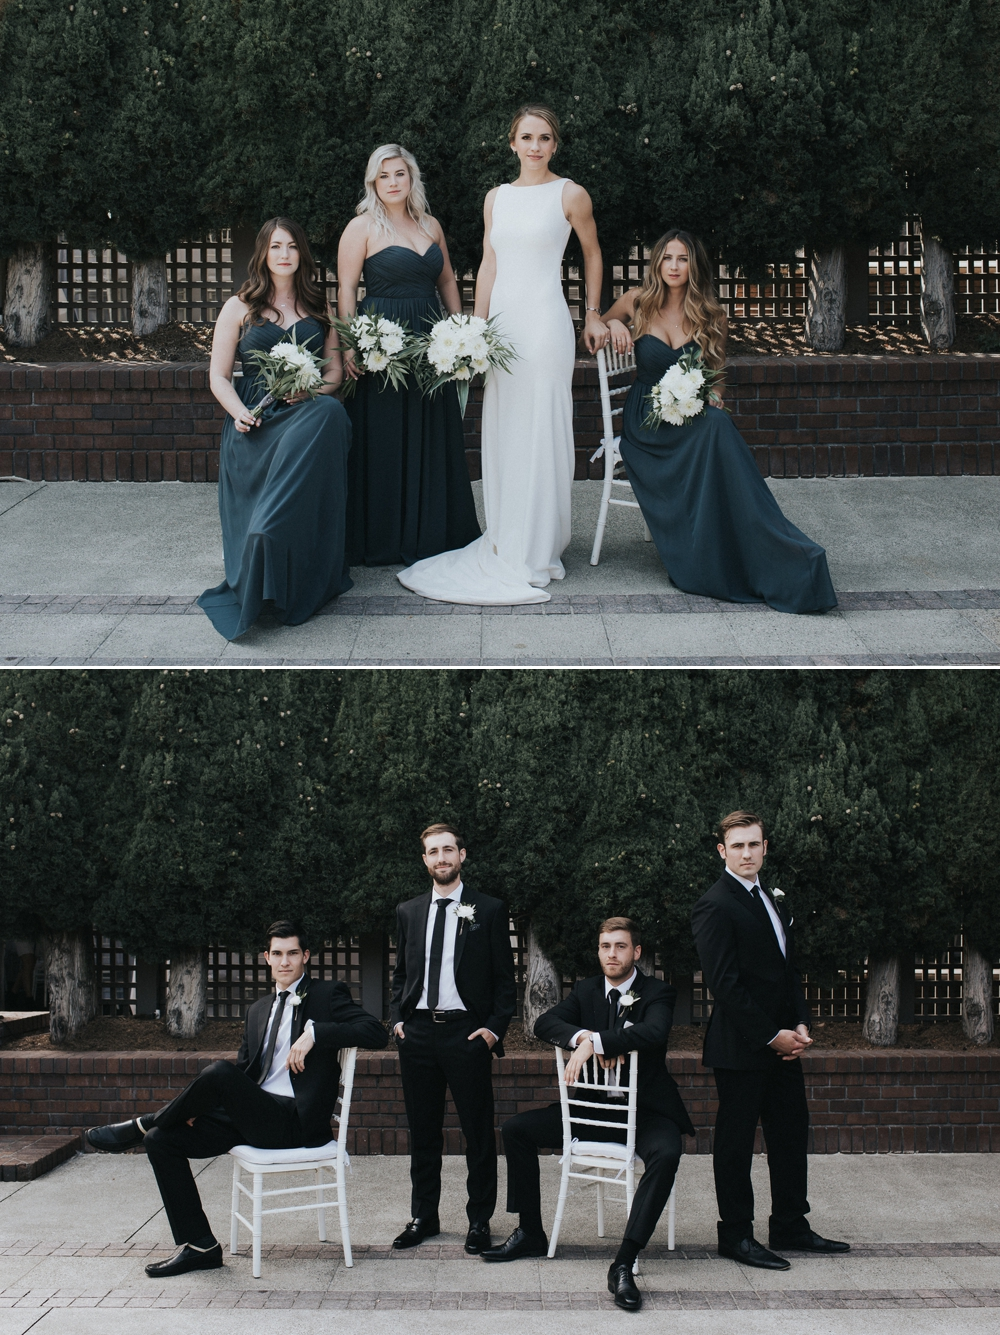 vogue-style-wedding-party-portrits